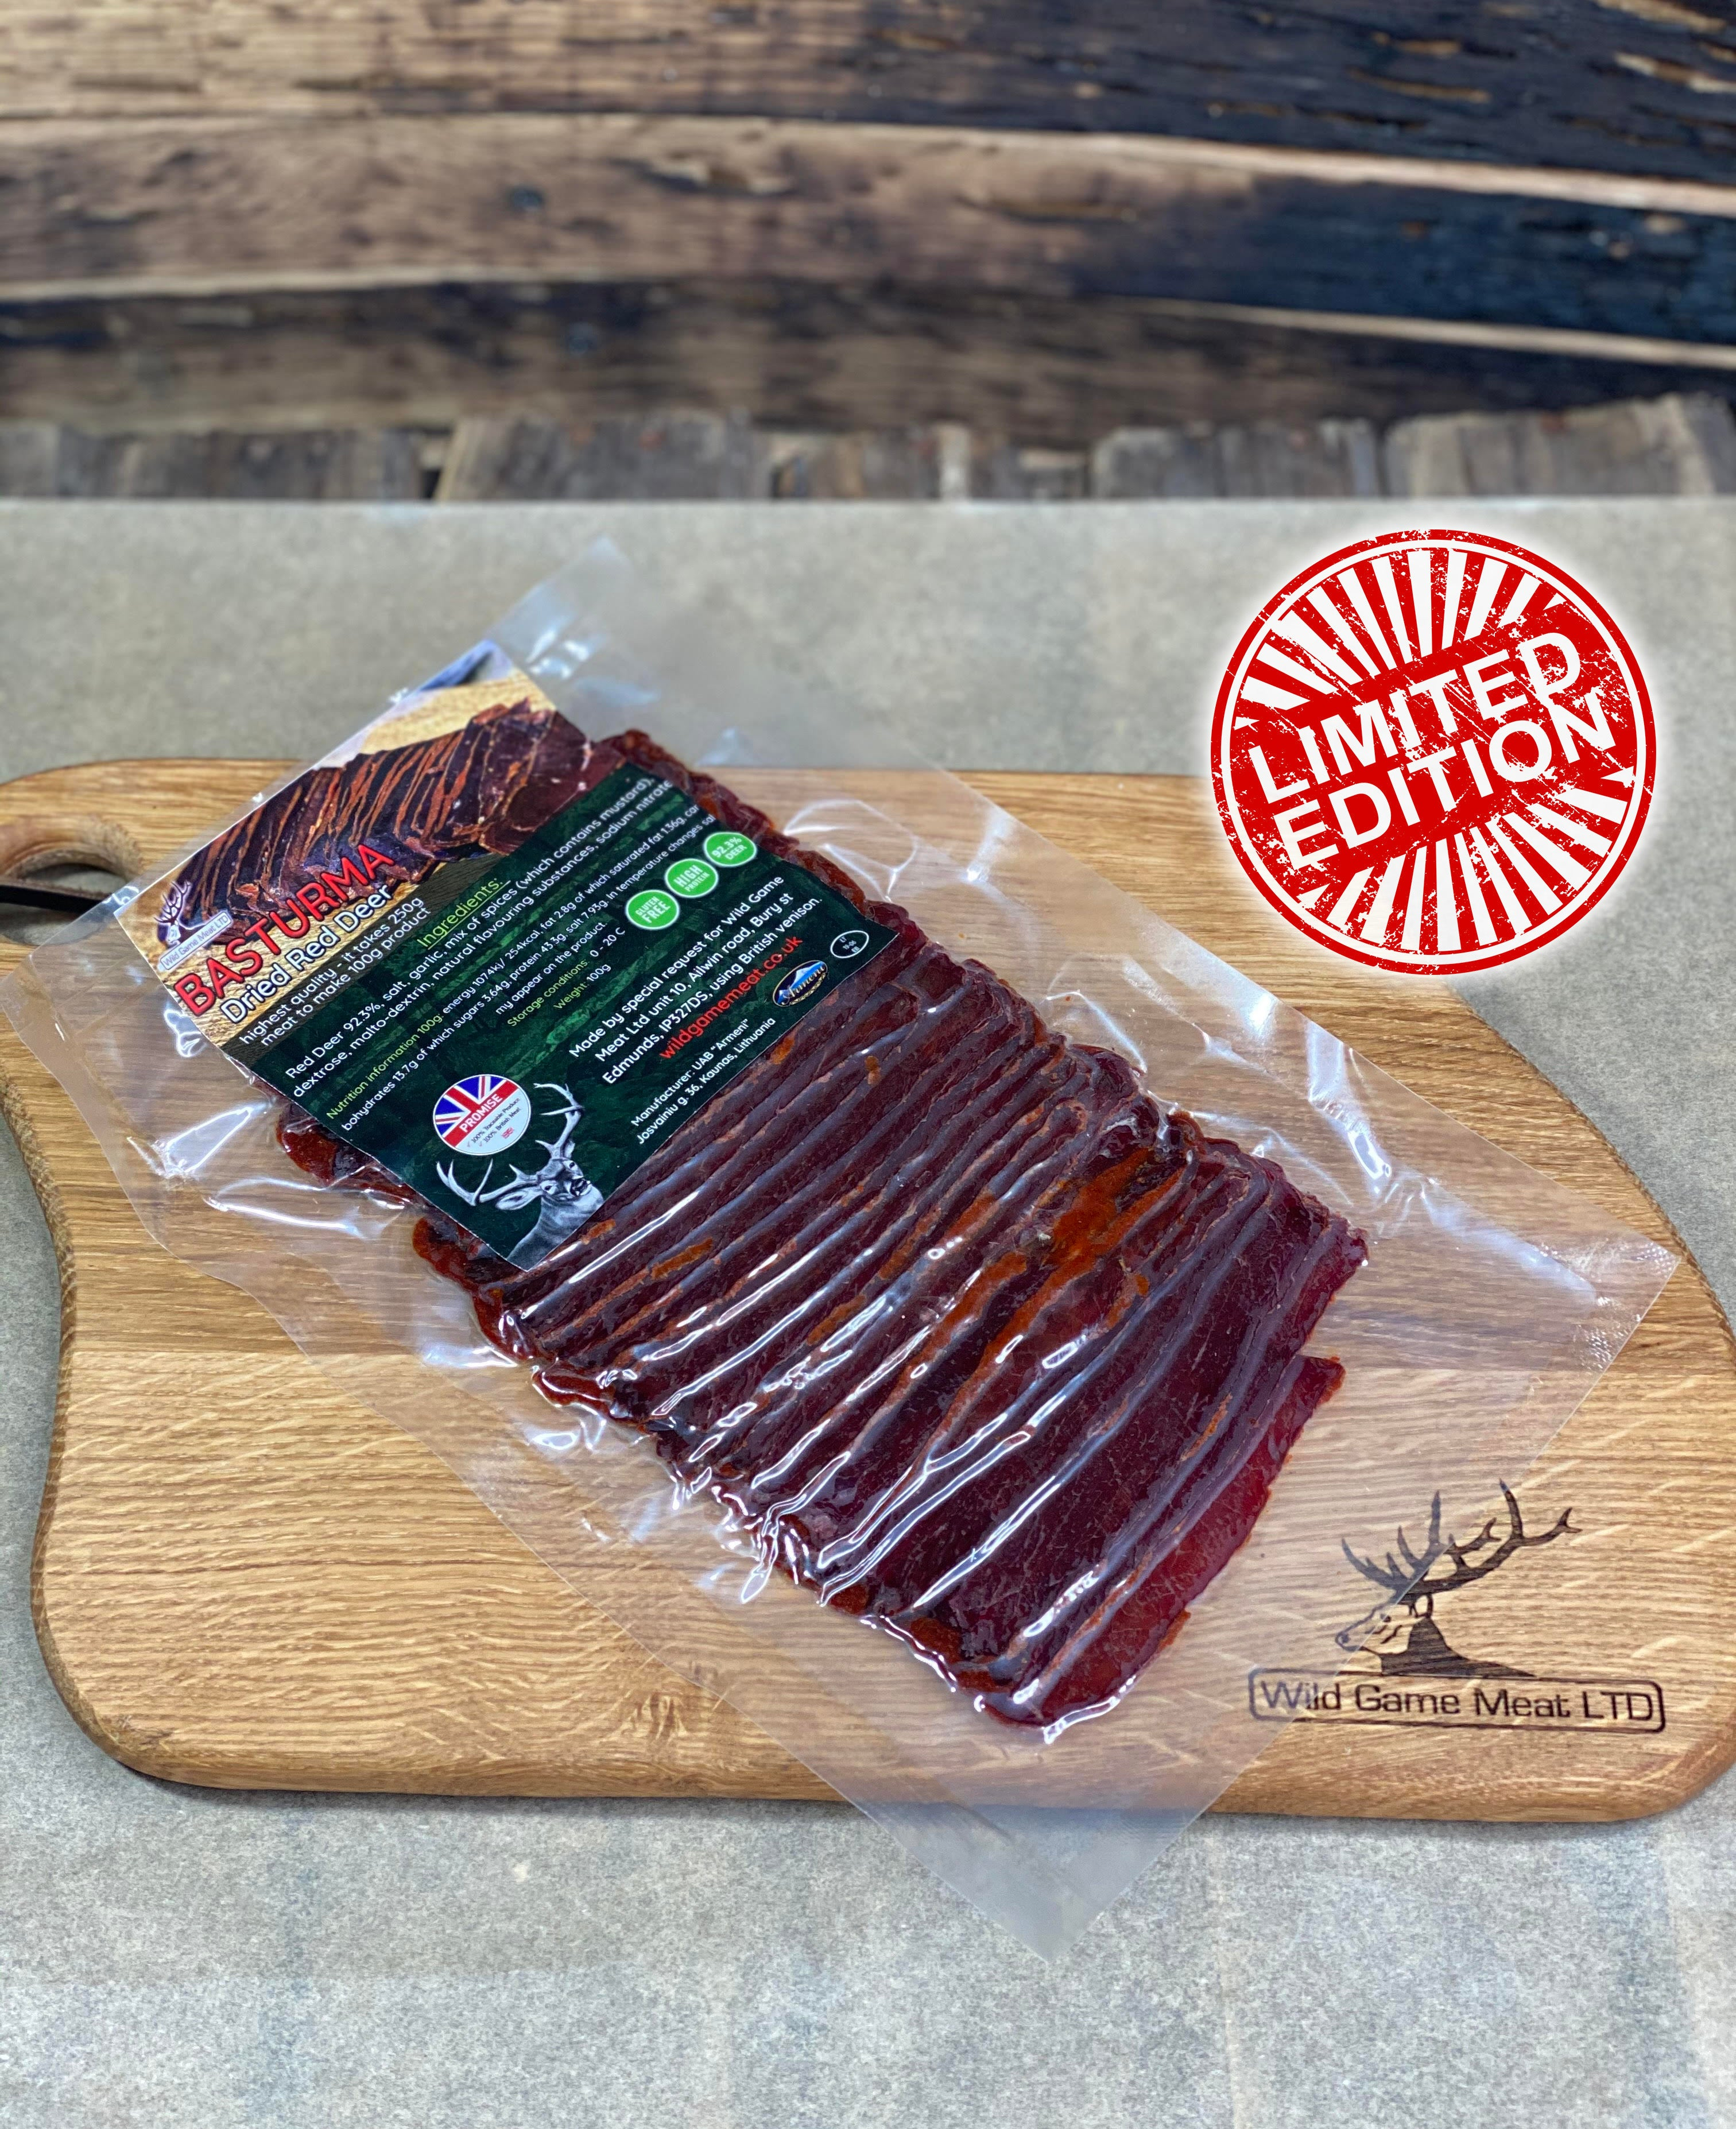 NEW! Dried Red Deer BASTURMA - Wild Game Meat